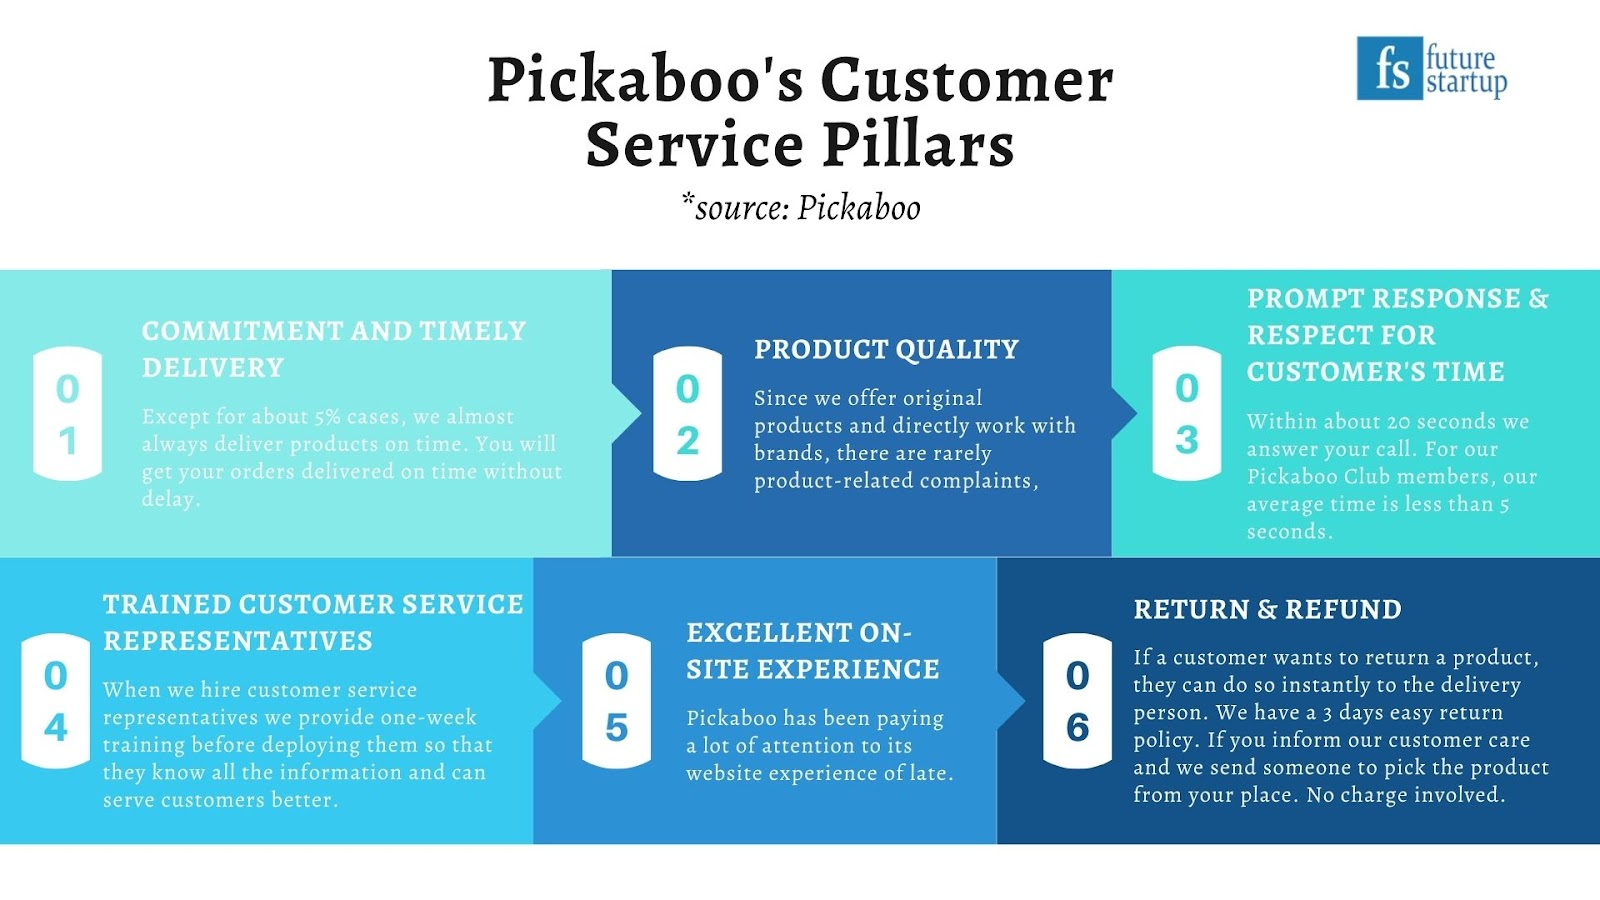 Pickaboo Takes a Different Approach to Growth, Focuses on Customer Service and Trust Building